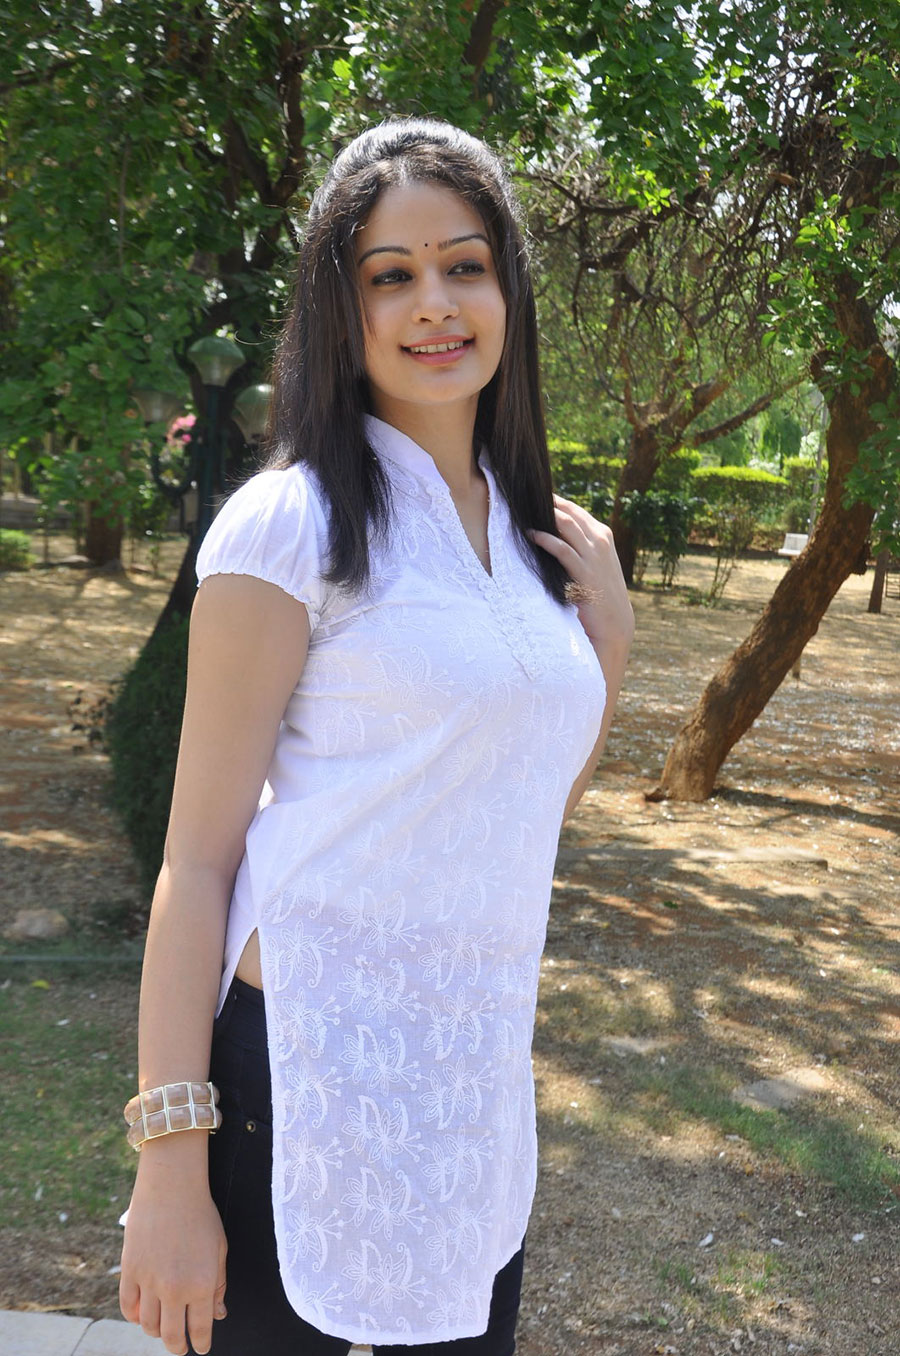 Band baaja heroine fair and pretty rupal in white kurta photos trying to show outdoor gallery